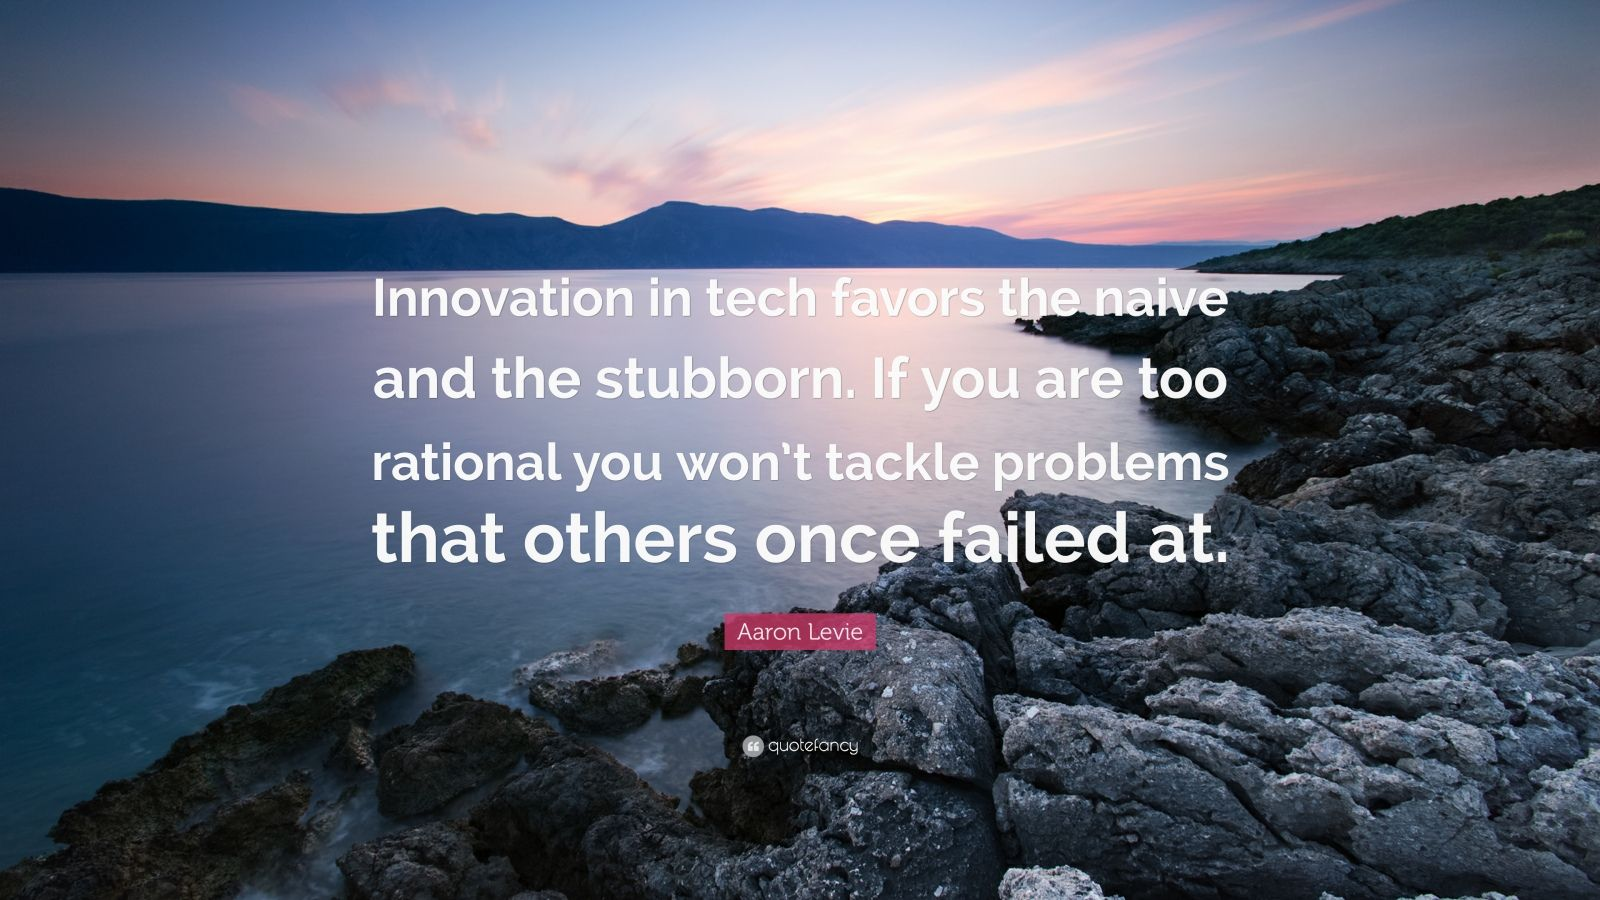 """Aaron Levie Quote: """"Innovation in tech favors the naive and the stubborn. If you are too rational you won't tackle problems that others once failed at."""""""